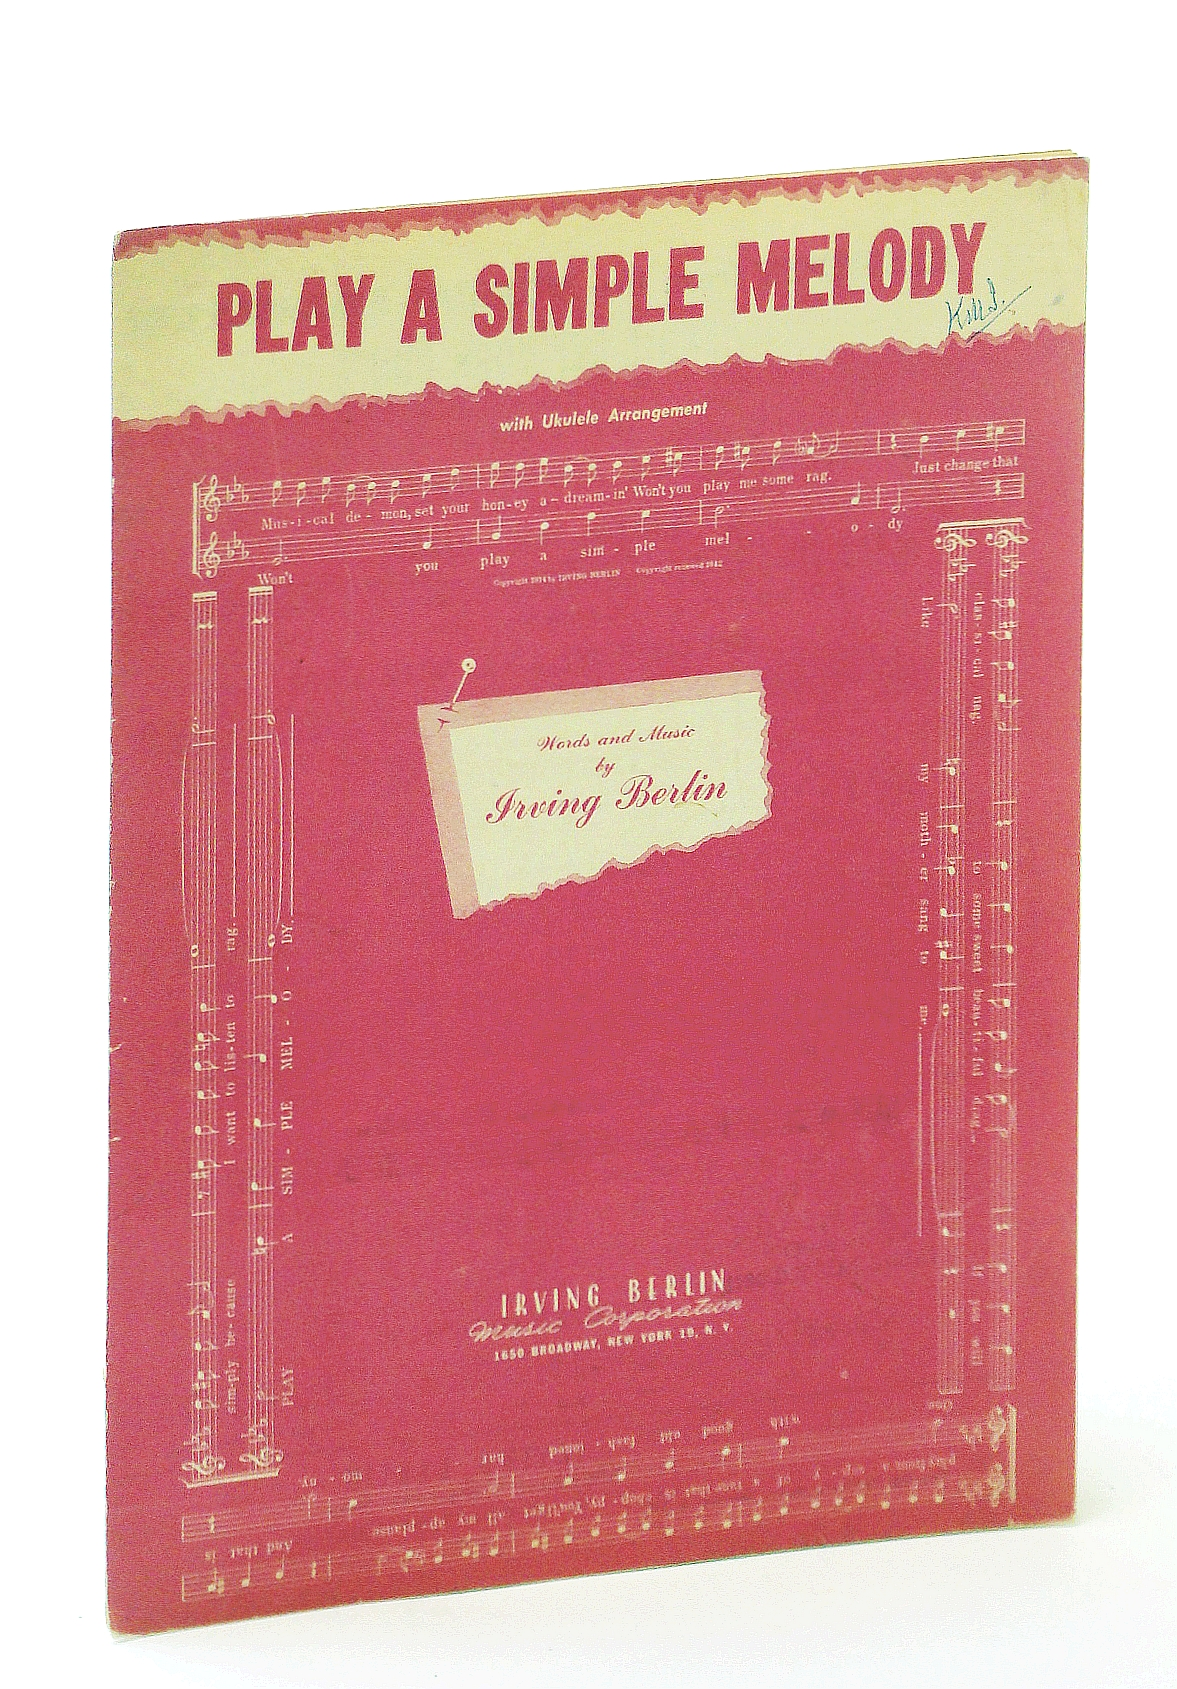 Image for Sheet Music Play A Simple Melody Irving Berlin 9